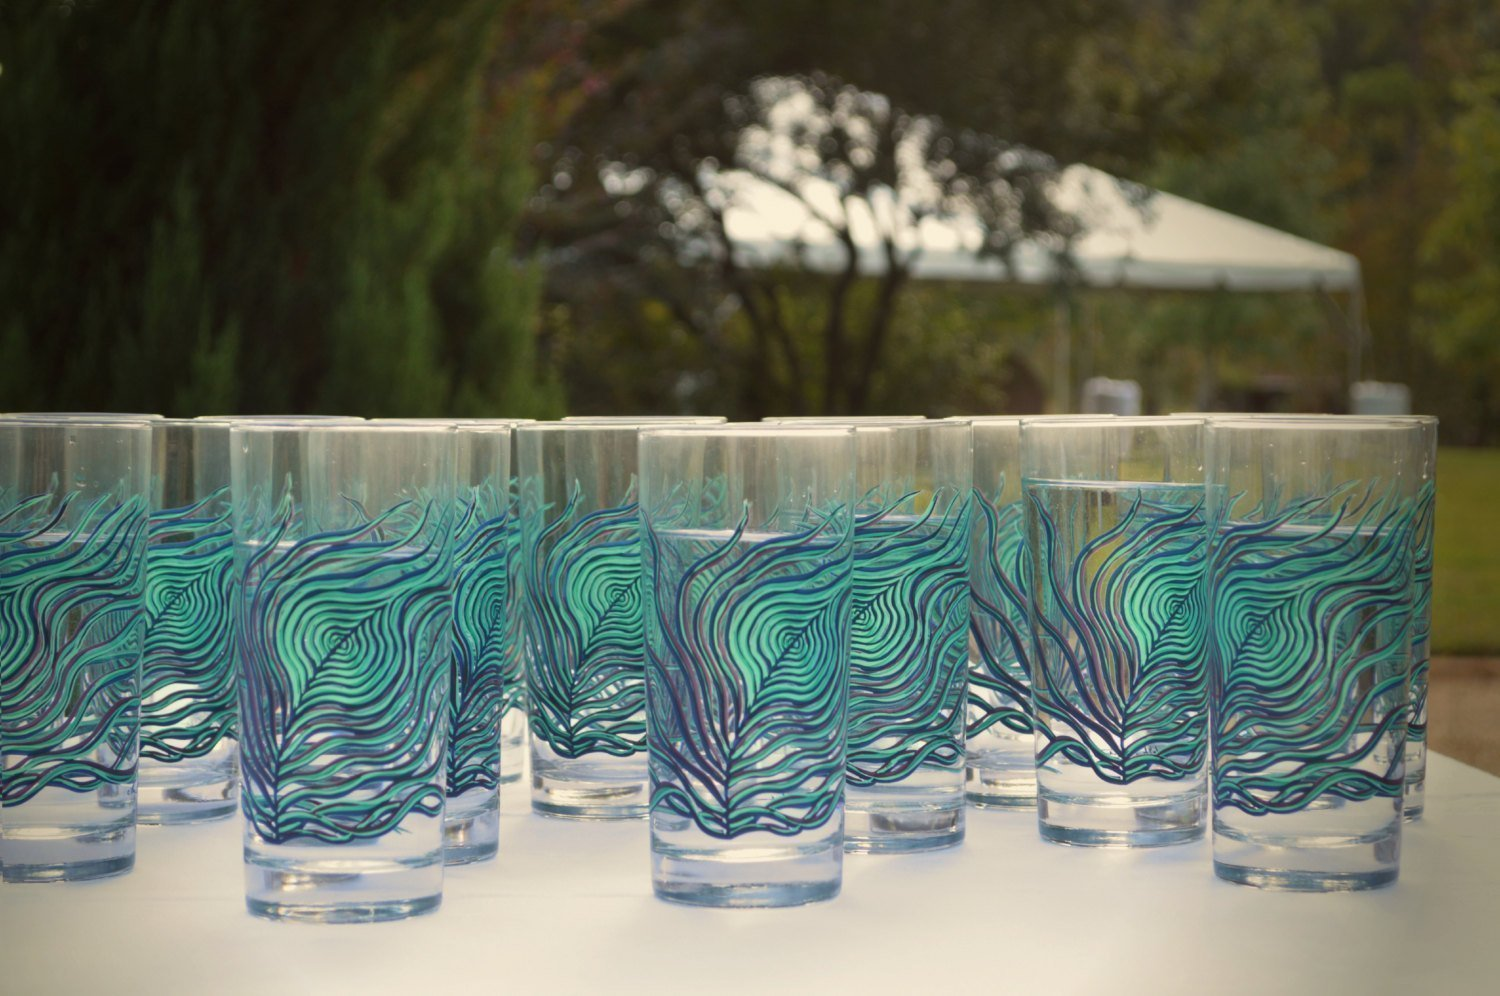 Peacock Feather Glassware - Set of 2 Hand Painted Glasses, M Gift for Her, Everyday Drinking Glasses by Mary Elizabeth Arts